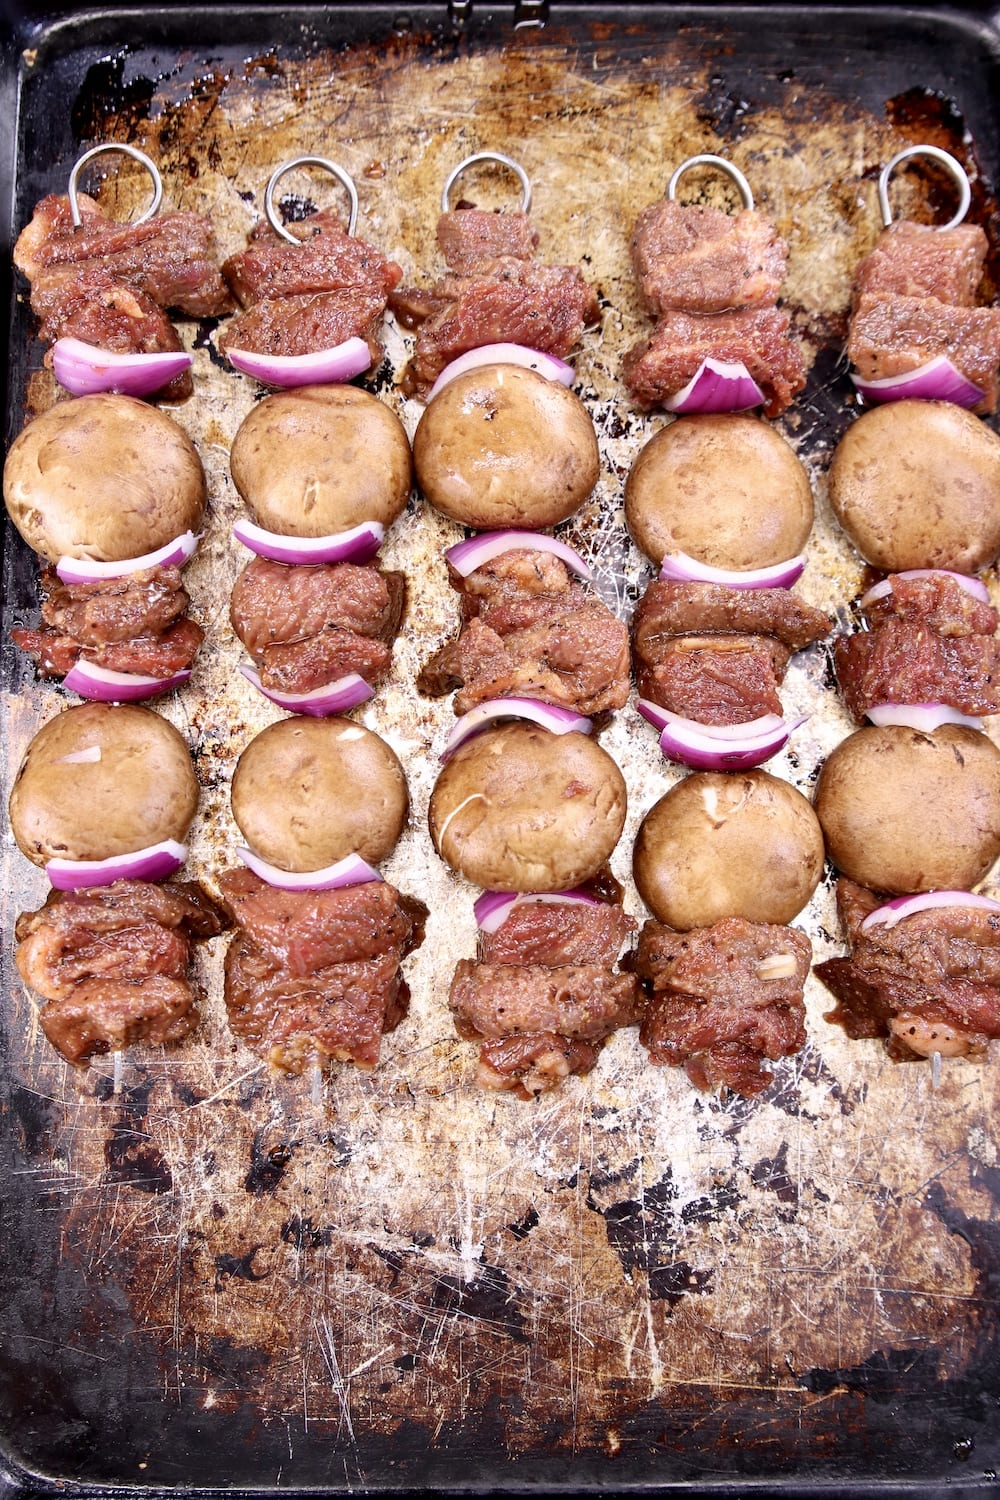 steak, mushroom and red onion kabobs on a sheet pan ready to grill